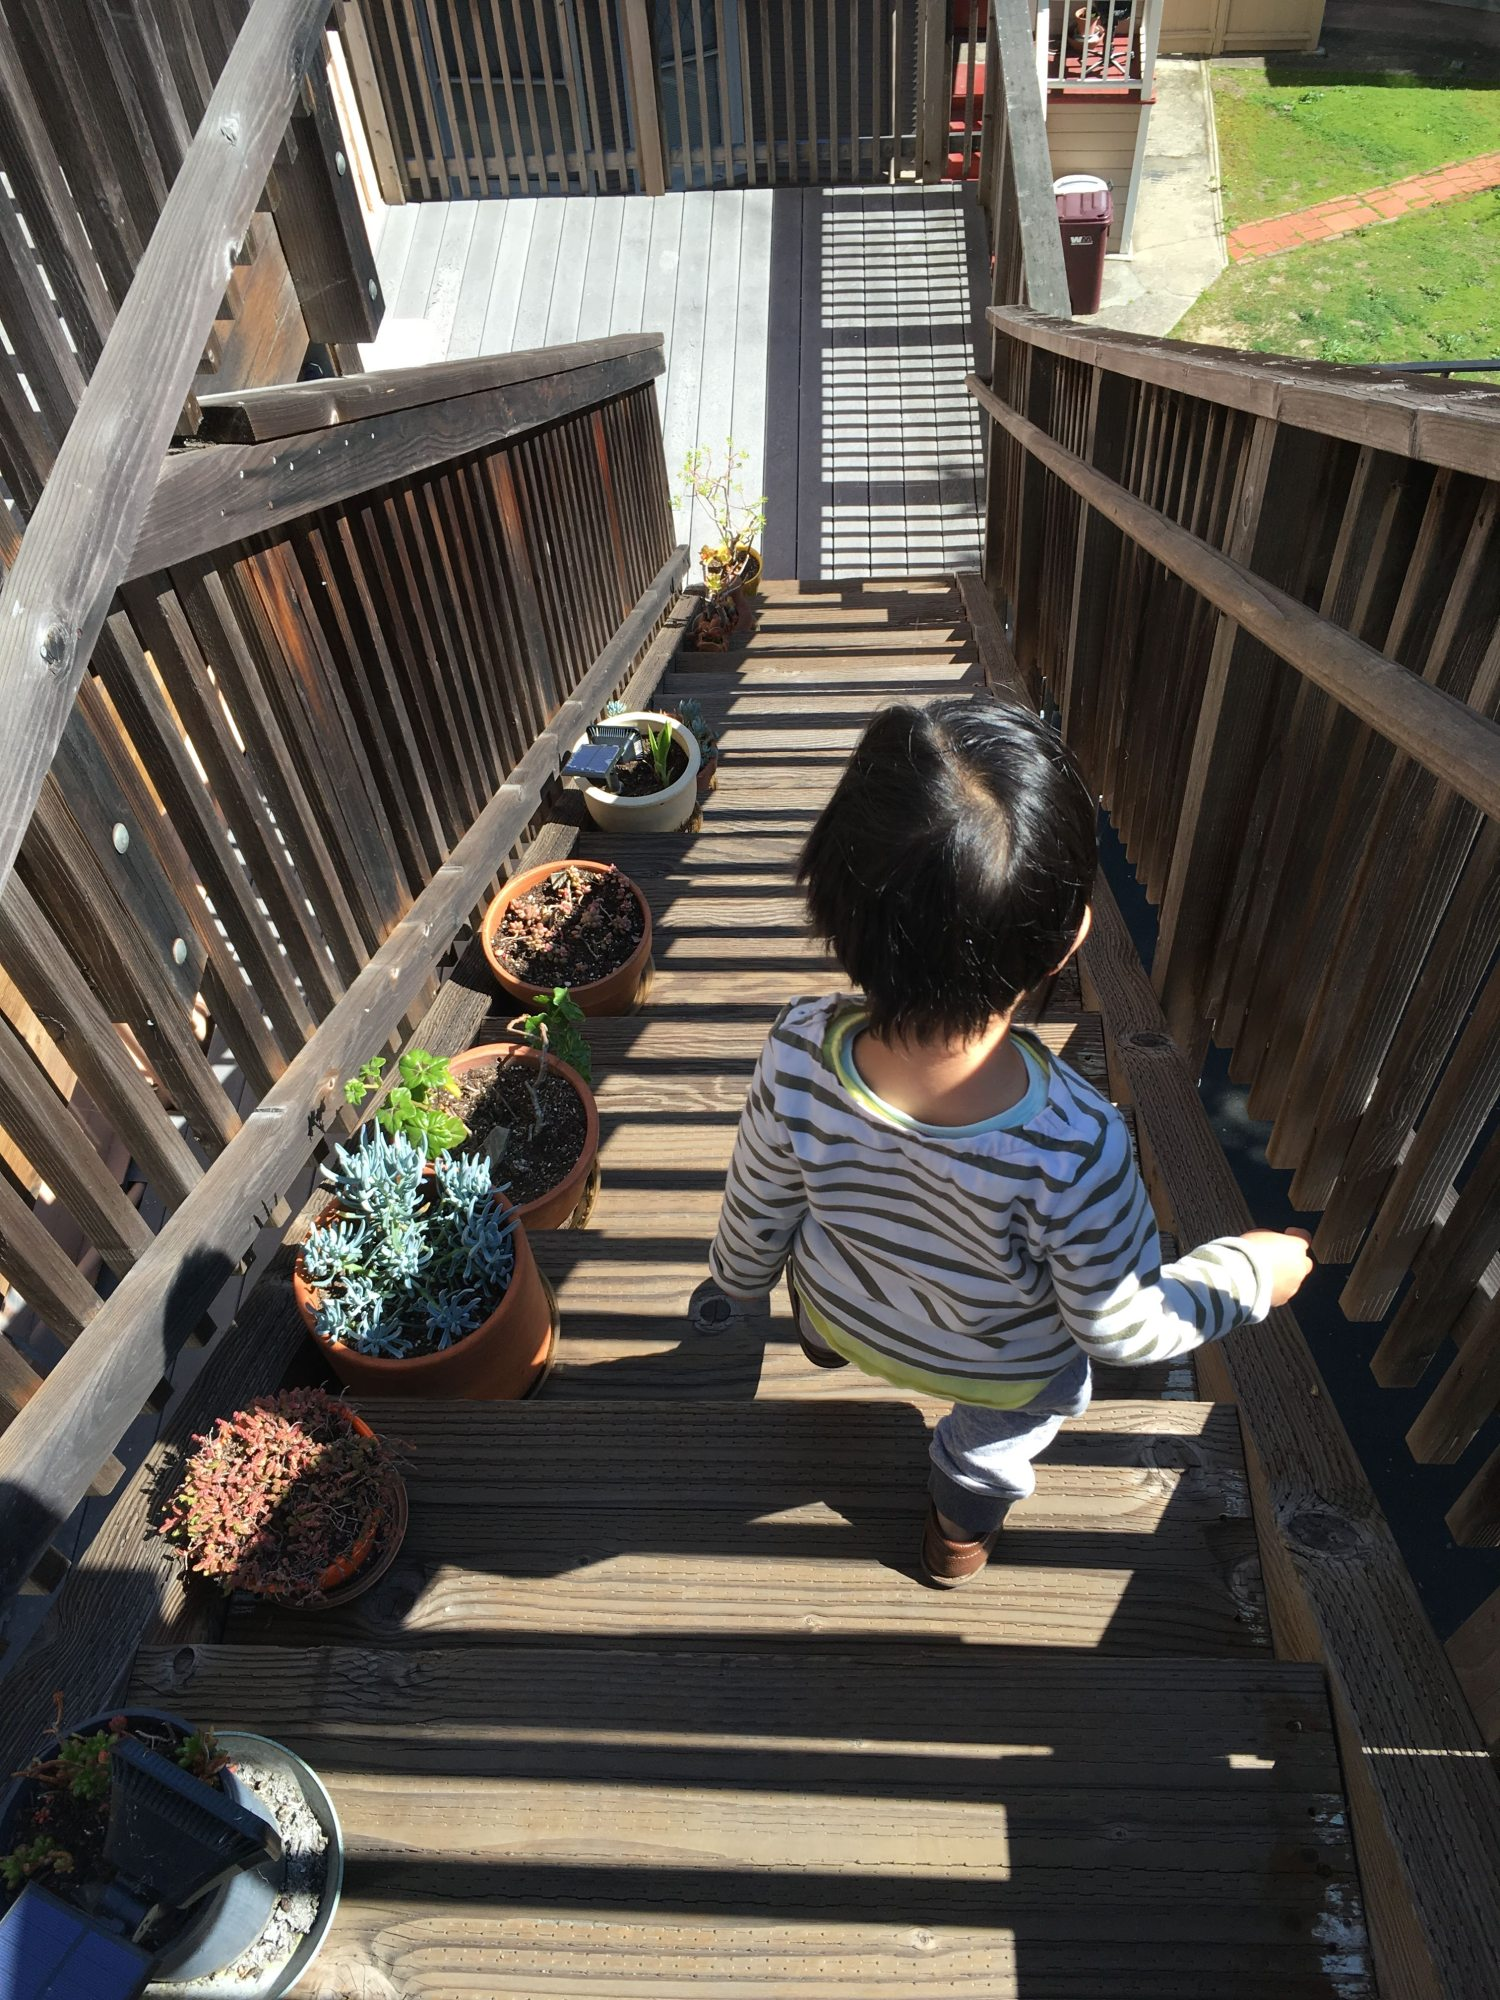 A small child with short black hair descends sunny wooden outdoor stairs